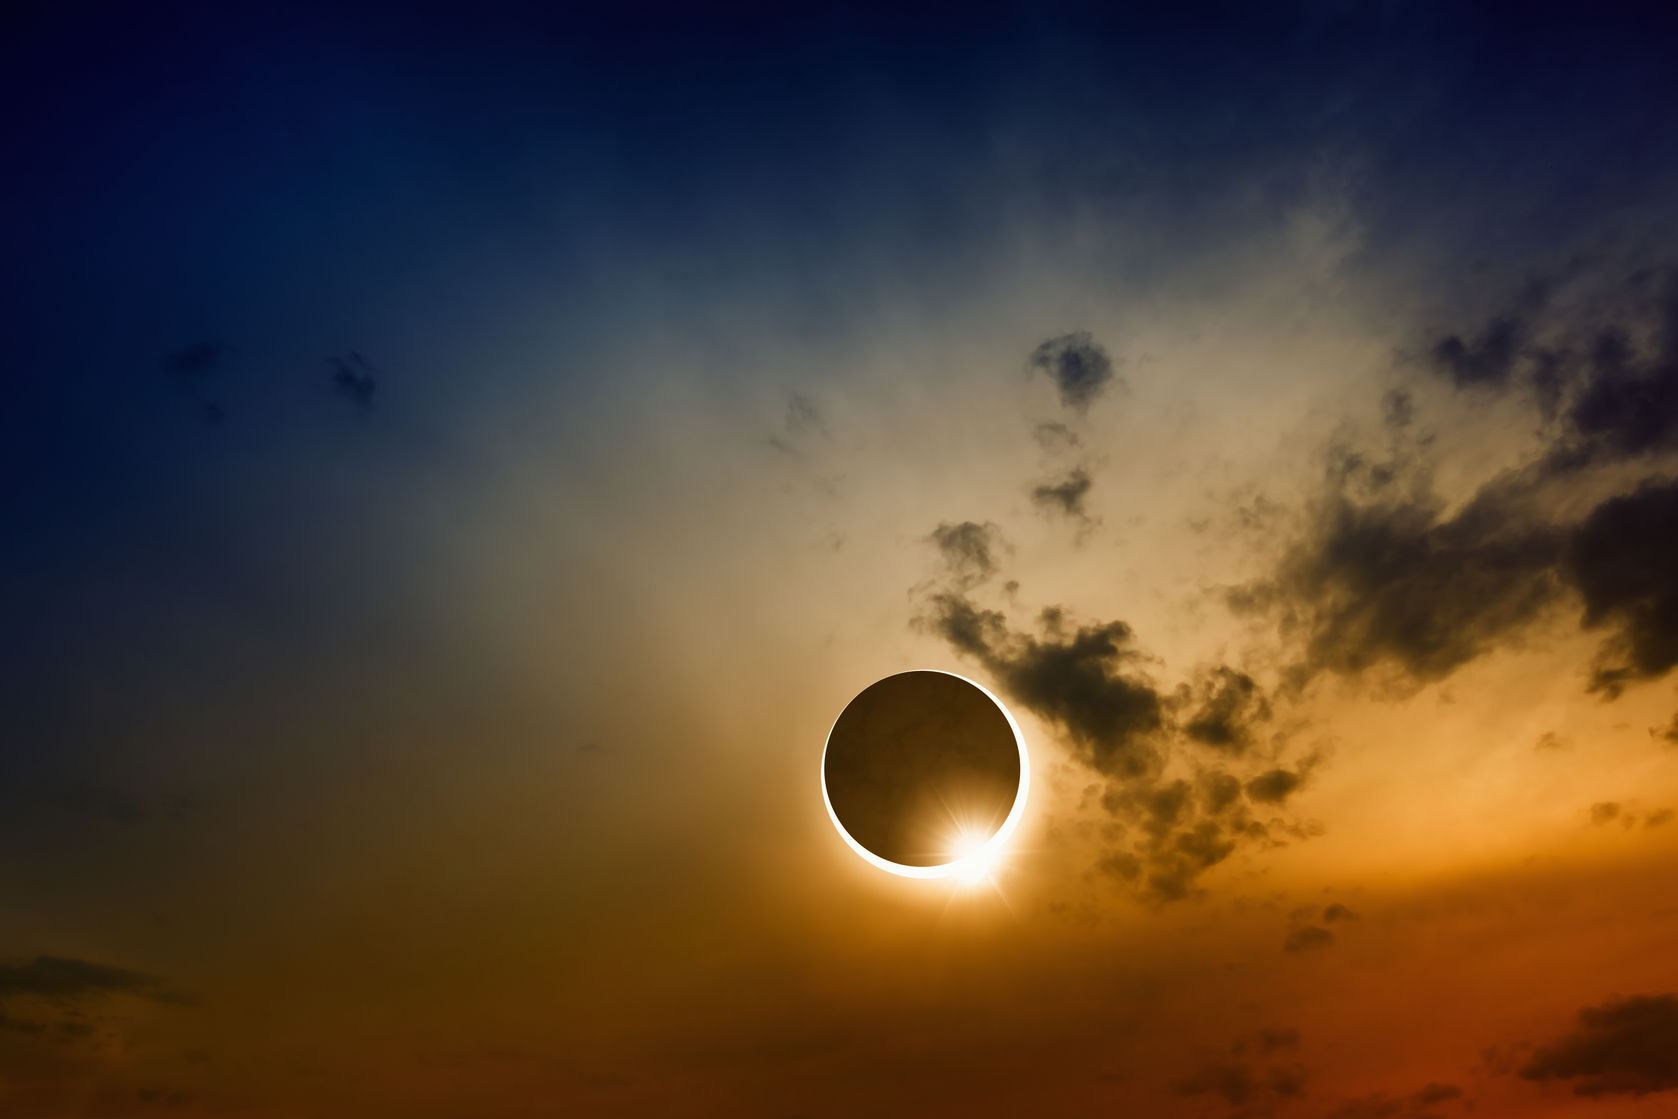 Will One's Solar Eclipse Glasses Be Safe to Use in Coming 2024?